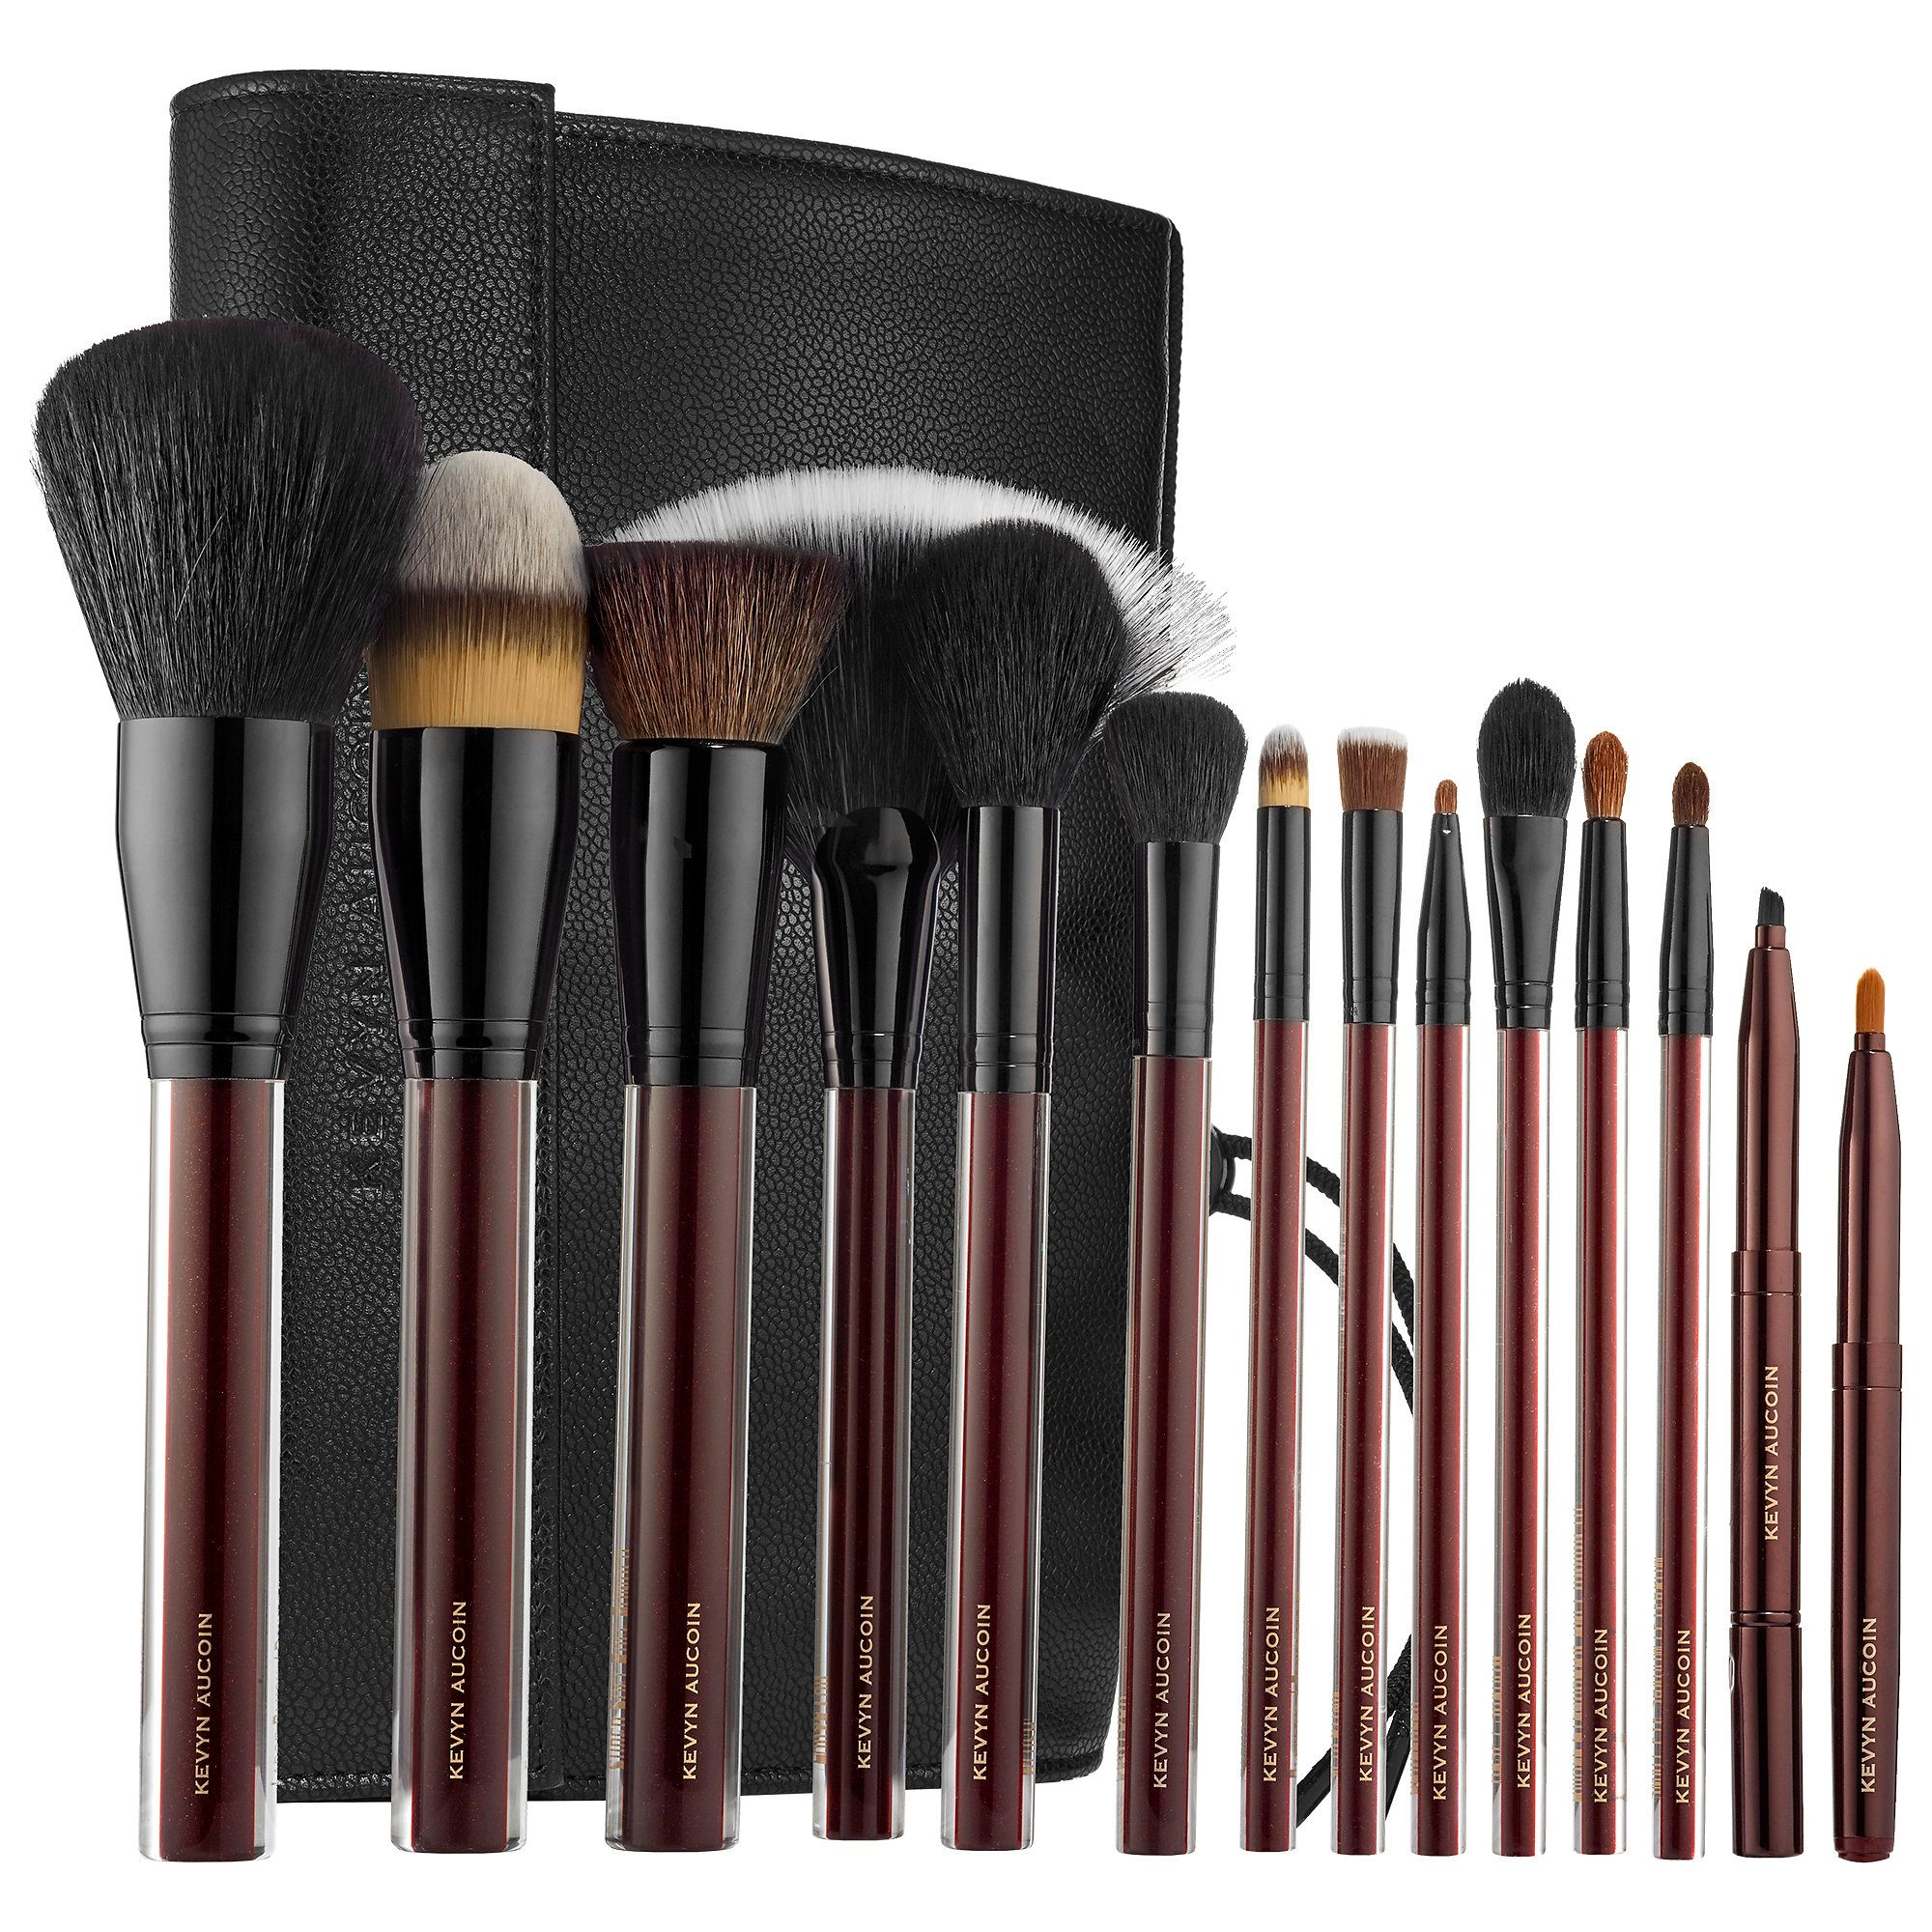 full makeup brush set. full makeup brush set l